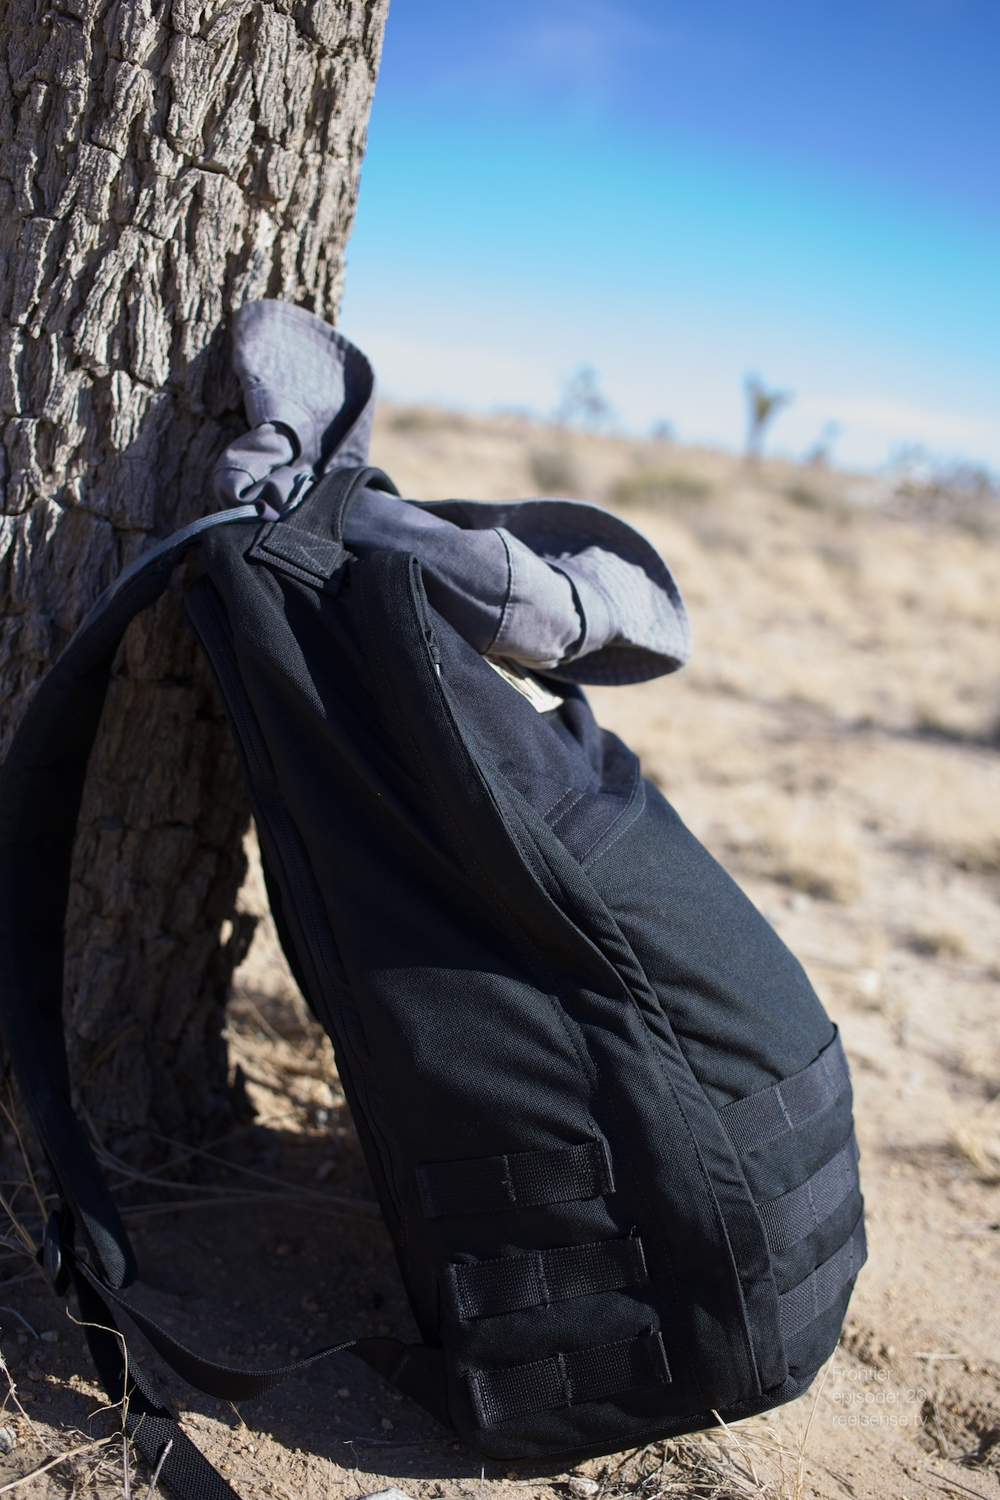 Joshua Tree - GORUCK GR1 backpack leaning against a Joshua Tree